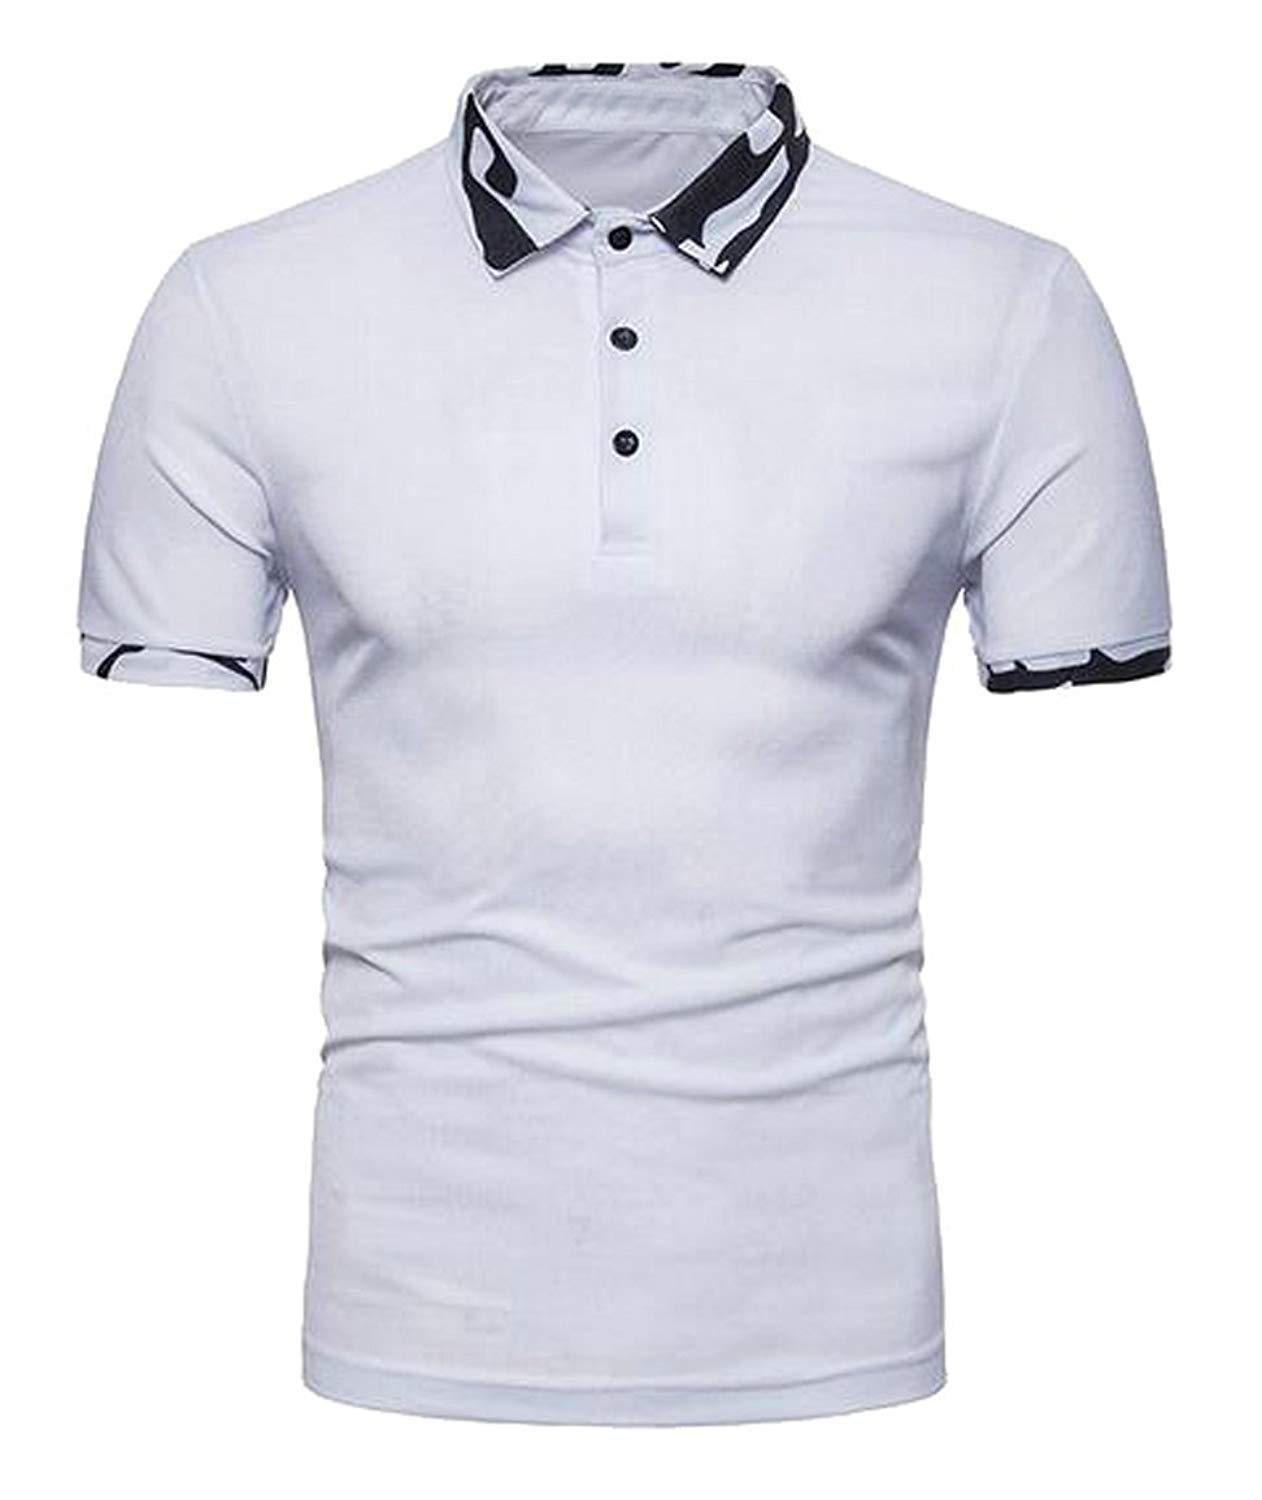 3a7a93496cd Get Quotations · XQS Mens Casual Camo Stitching Short Sleeve Golf Polo  Shirts T-Shirt